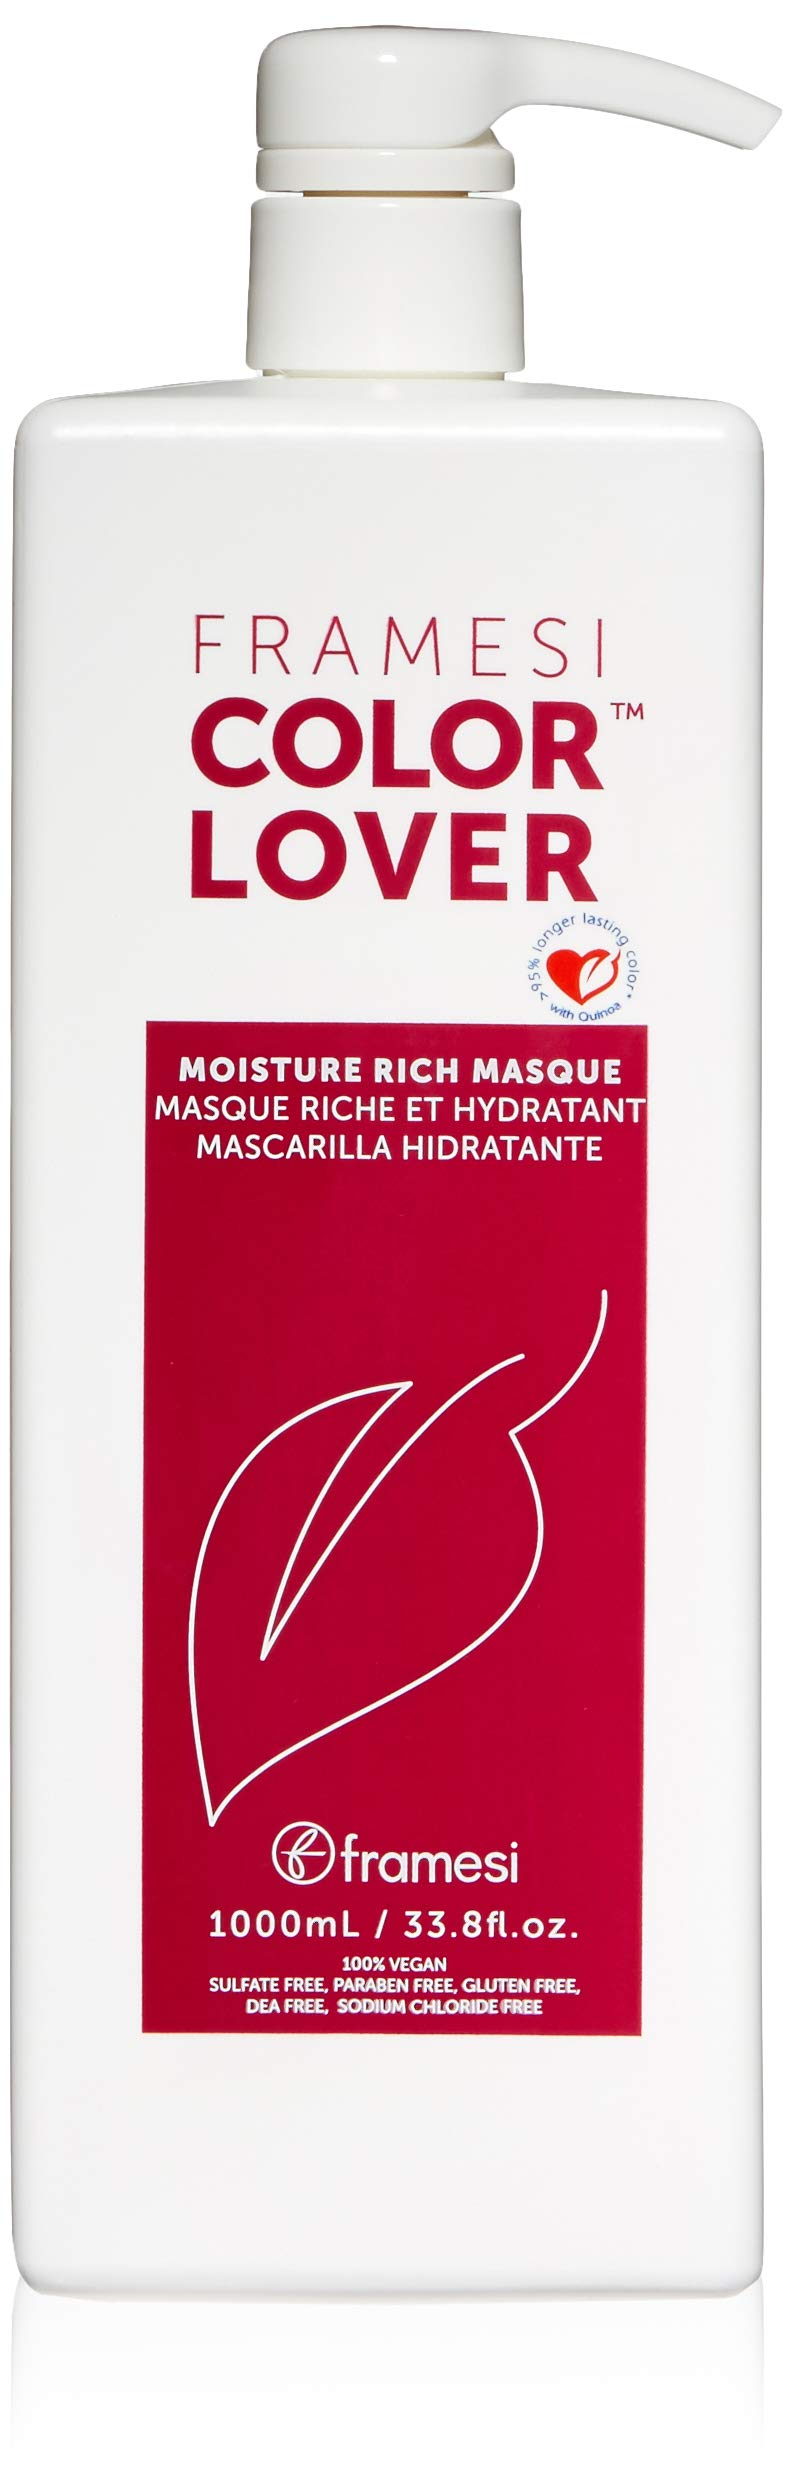 Framesi Color Lover Moisture Rich Masque - 33.8 Ounce, Revitalizing Treatment, Color Safe, Weightless and Moisture Rich Mask, Vegan, Gluten Free, Cruelty Free